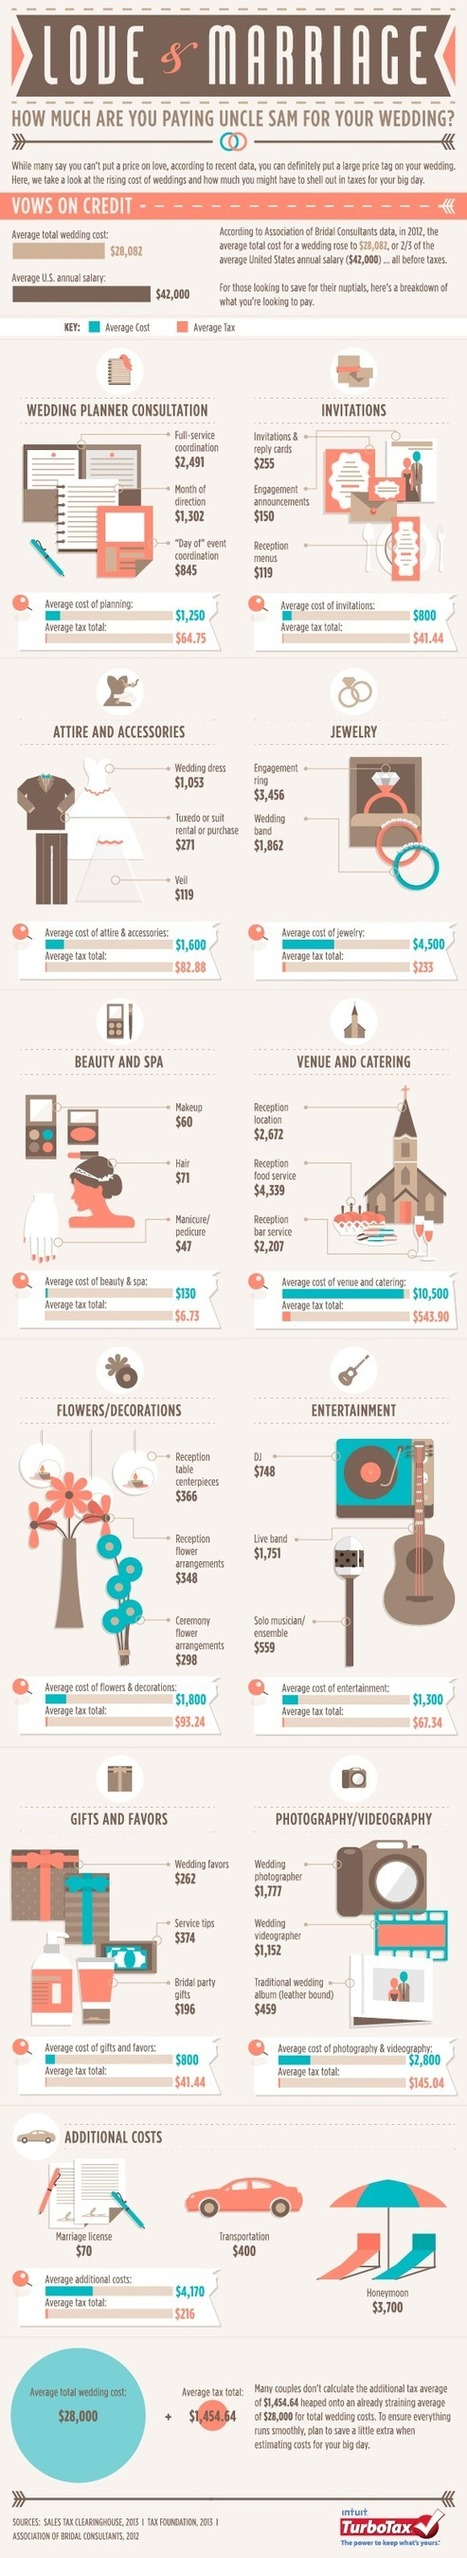 Love and Marriage: How Much Are You Paying Uncle Sam for Your Wedding [Infographic]? | Things you should know before marriage | Scoop.it